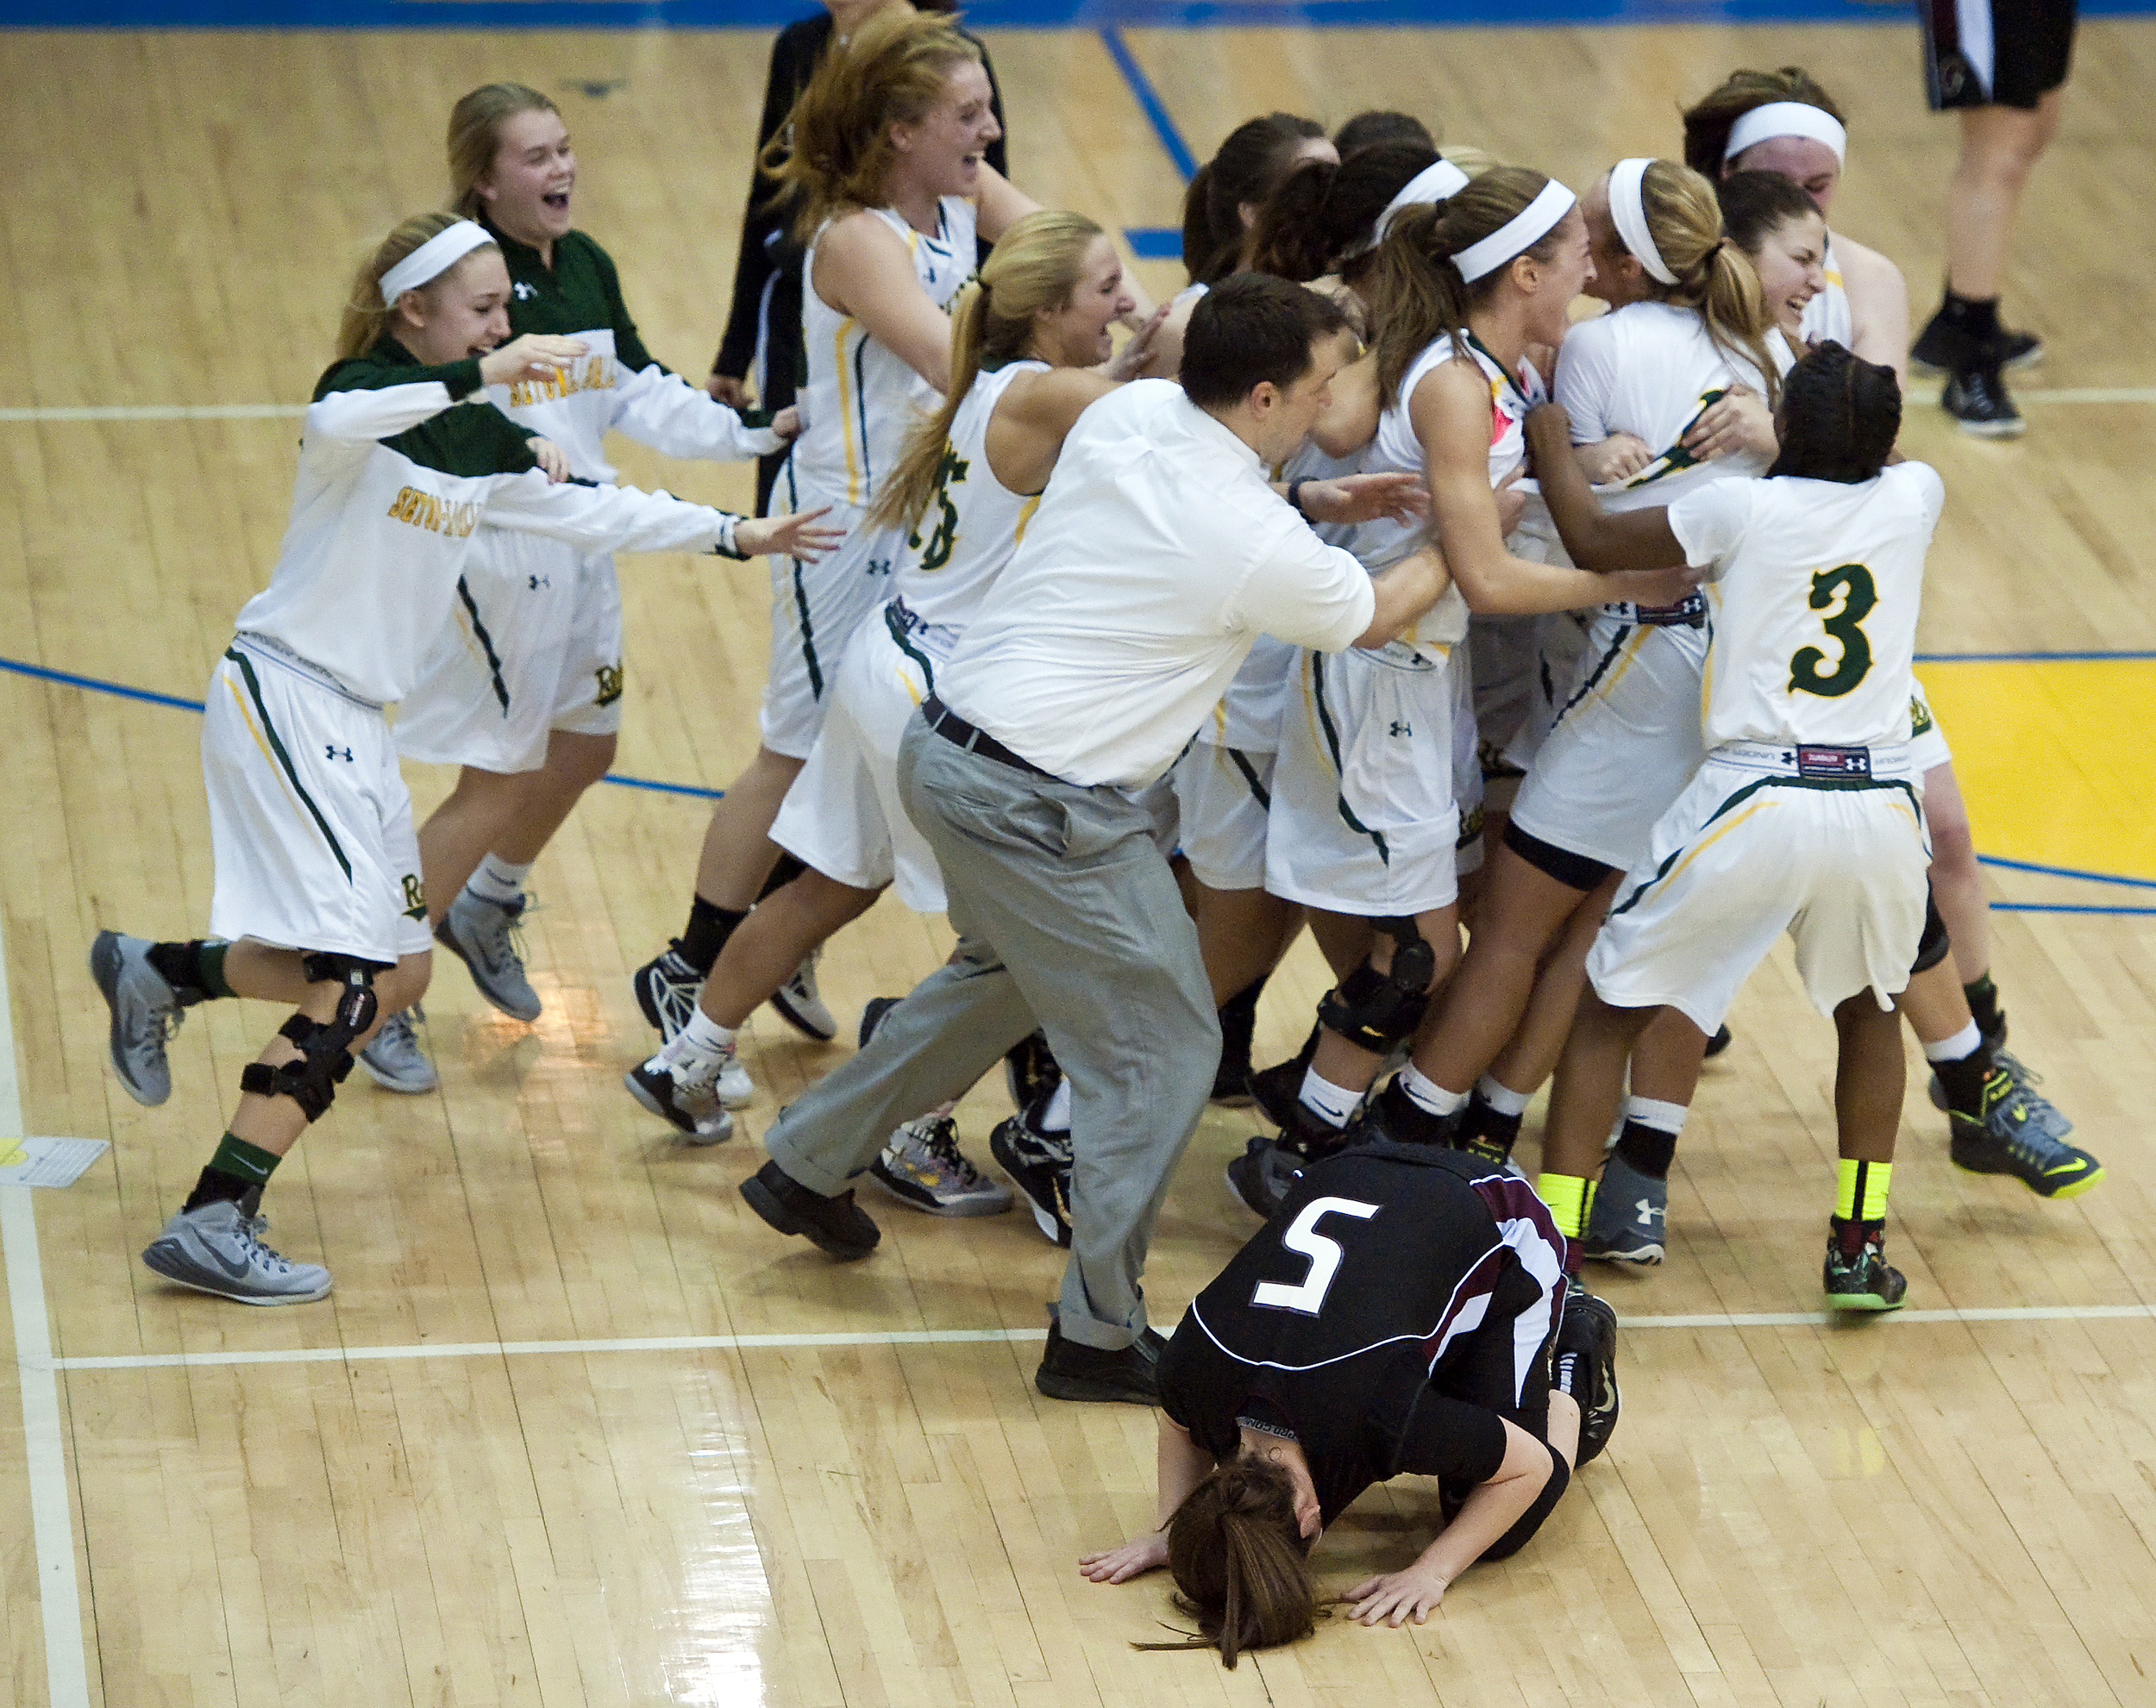 Seton-La Salle bombards Cassidy Walsh after her buzzer beater shot as Greensburg Central Catholic's Carolyn Appleby (5) reacts during a PIAA game on Tuesday, March 10, 2015 at Canon-McMillan High School. Seton-La Salle won 54-52.